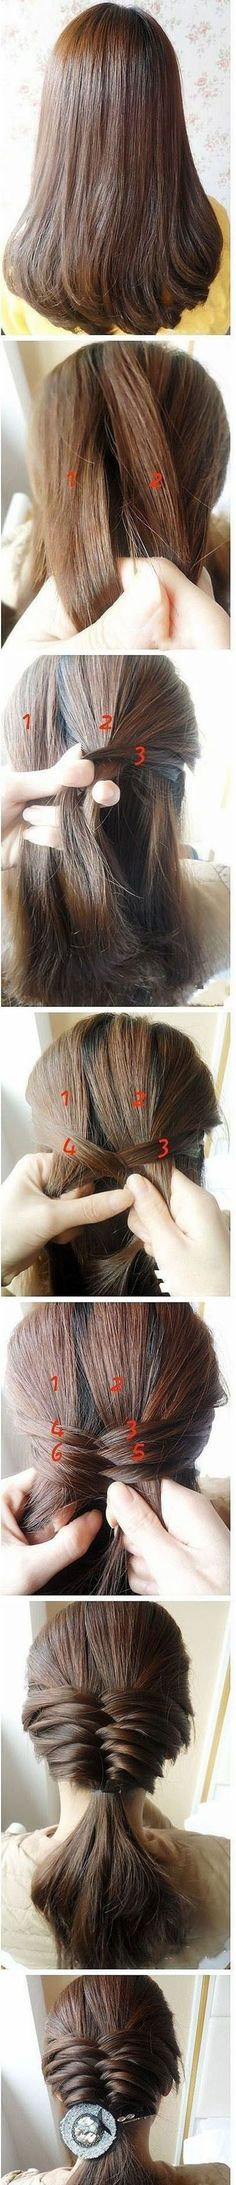 DIY a beautiful hair style 9-21